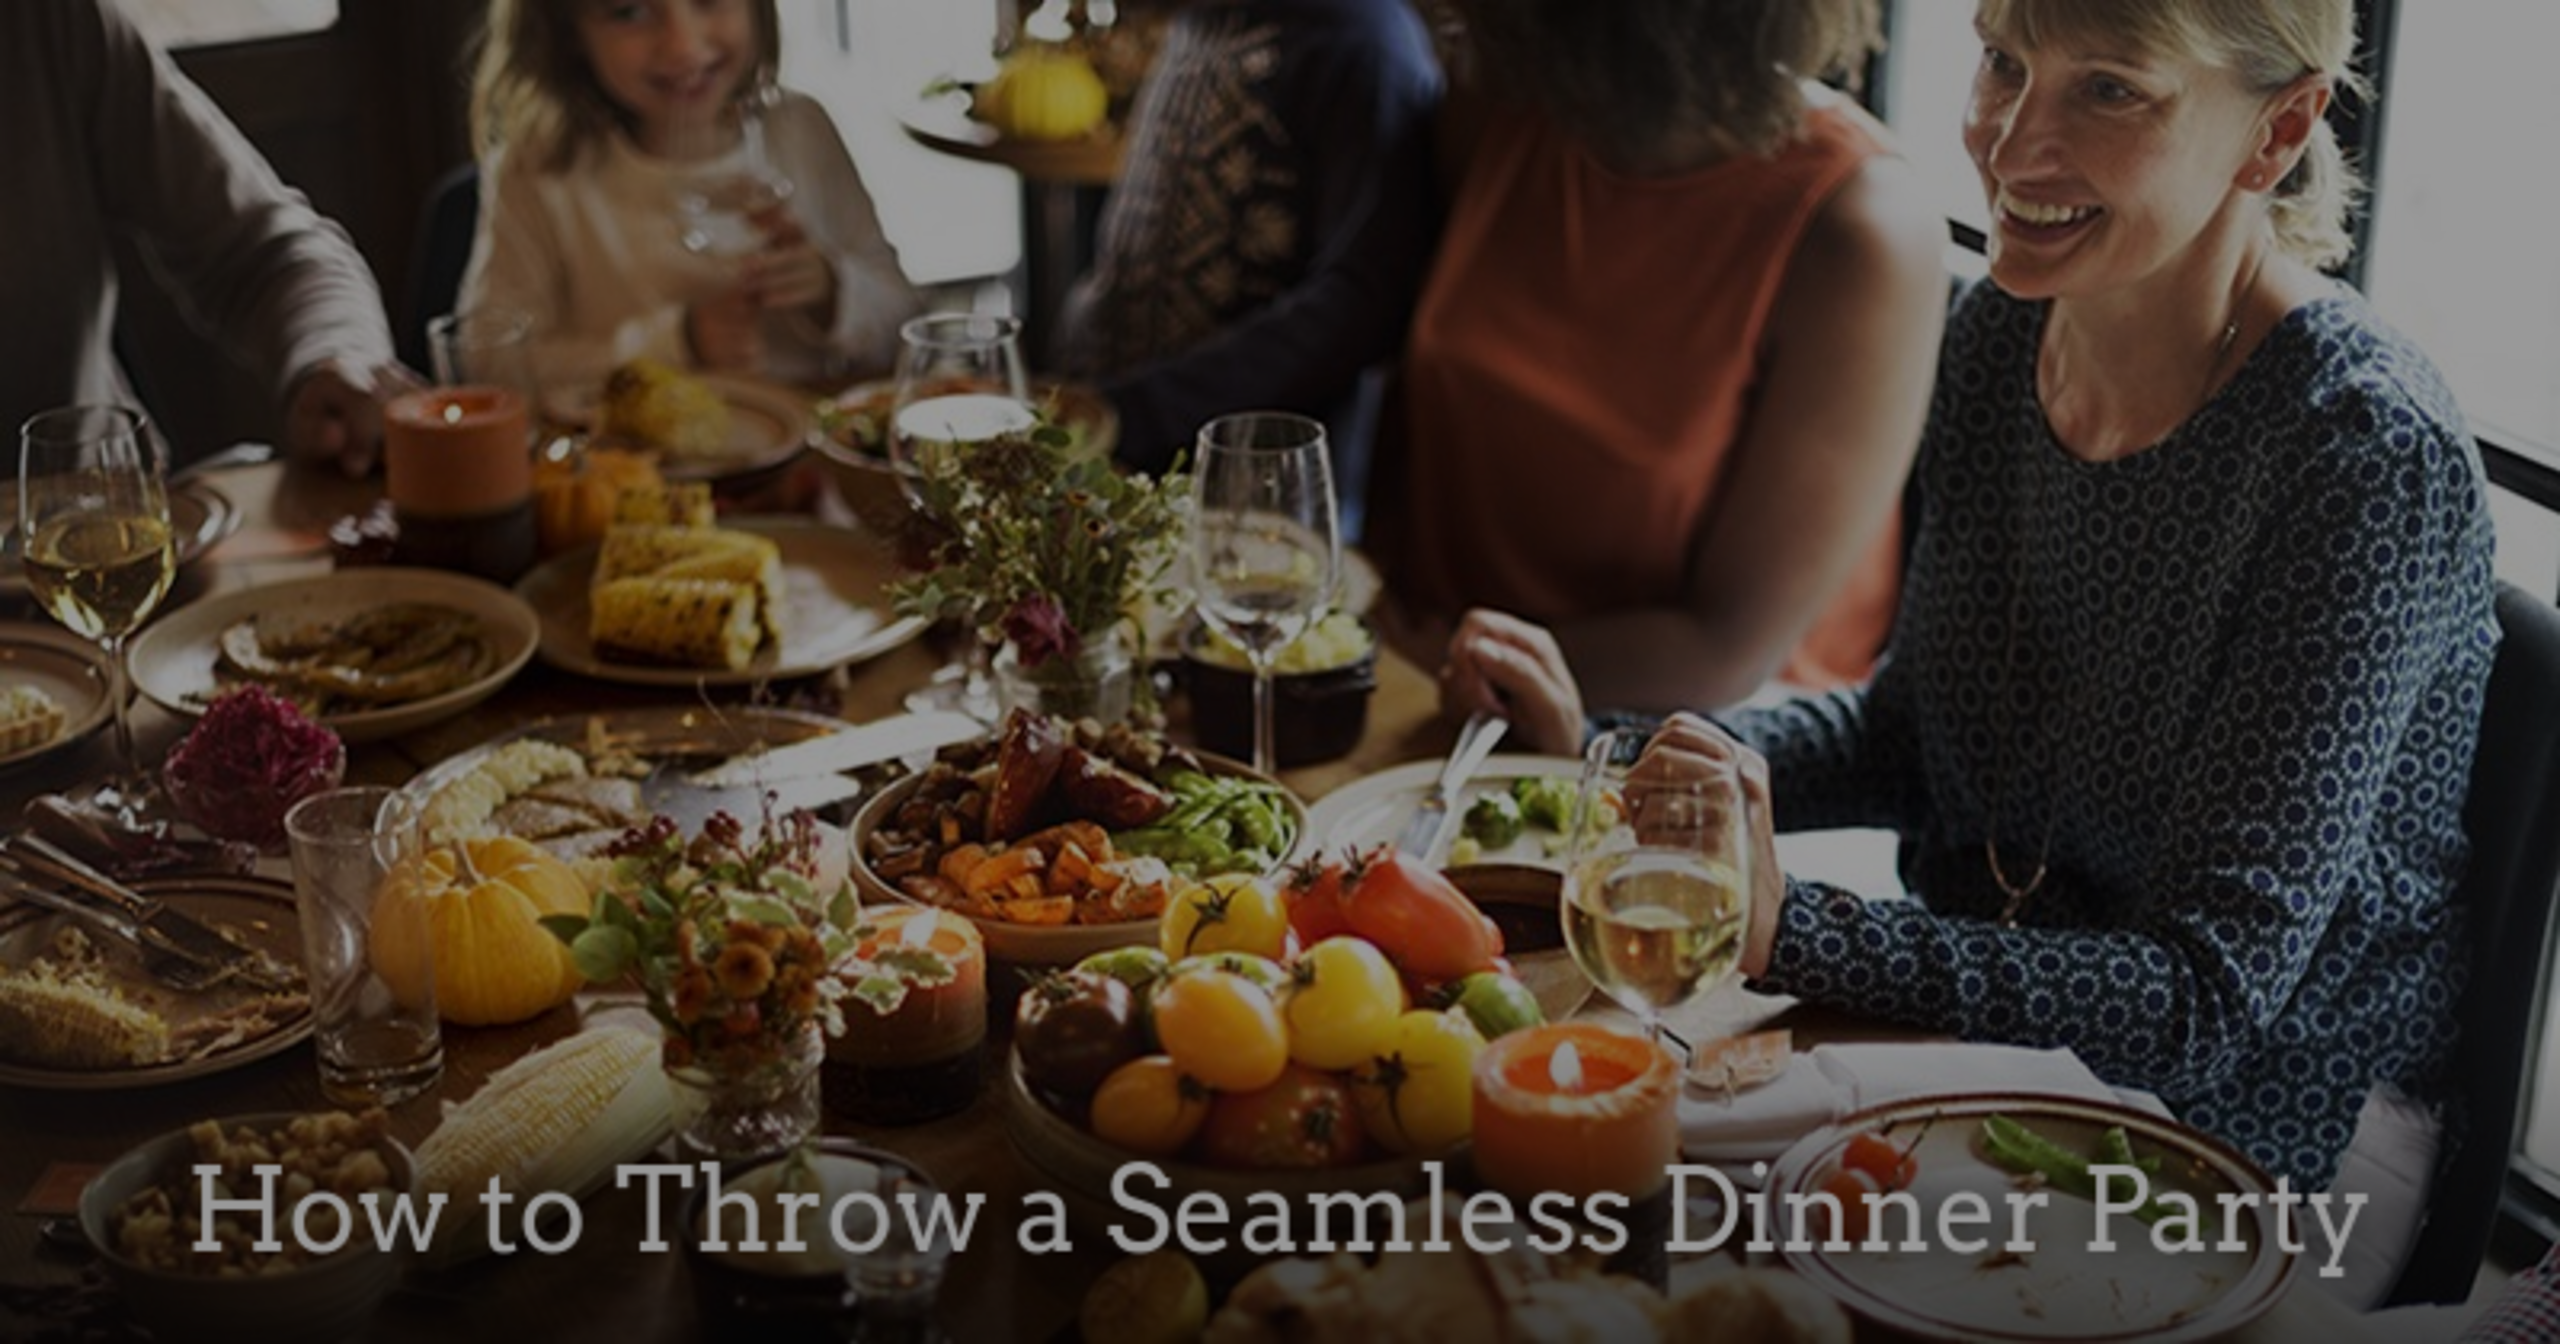 How to Throw a Seamless Dinner Party